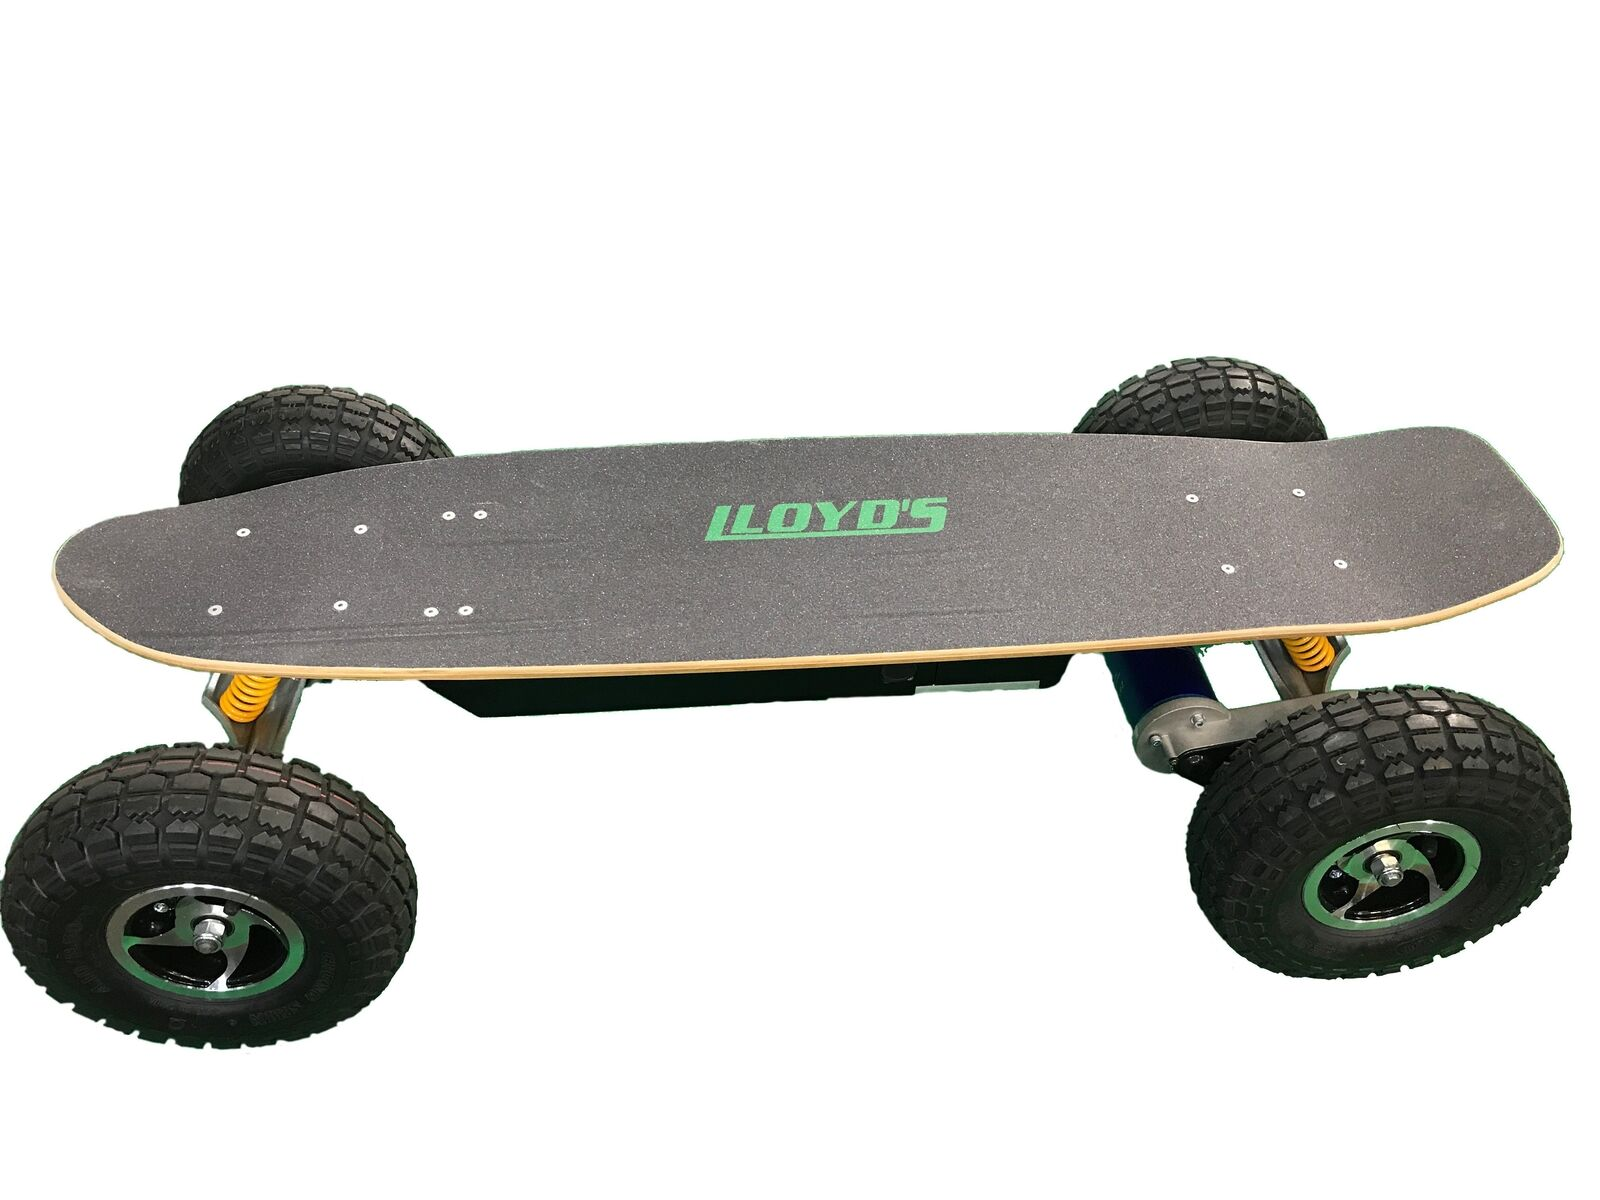 4000 watt All Terrain Electric Longboard w Lights